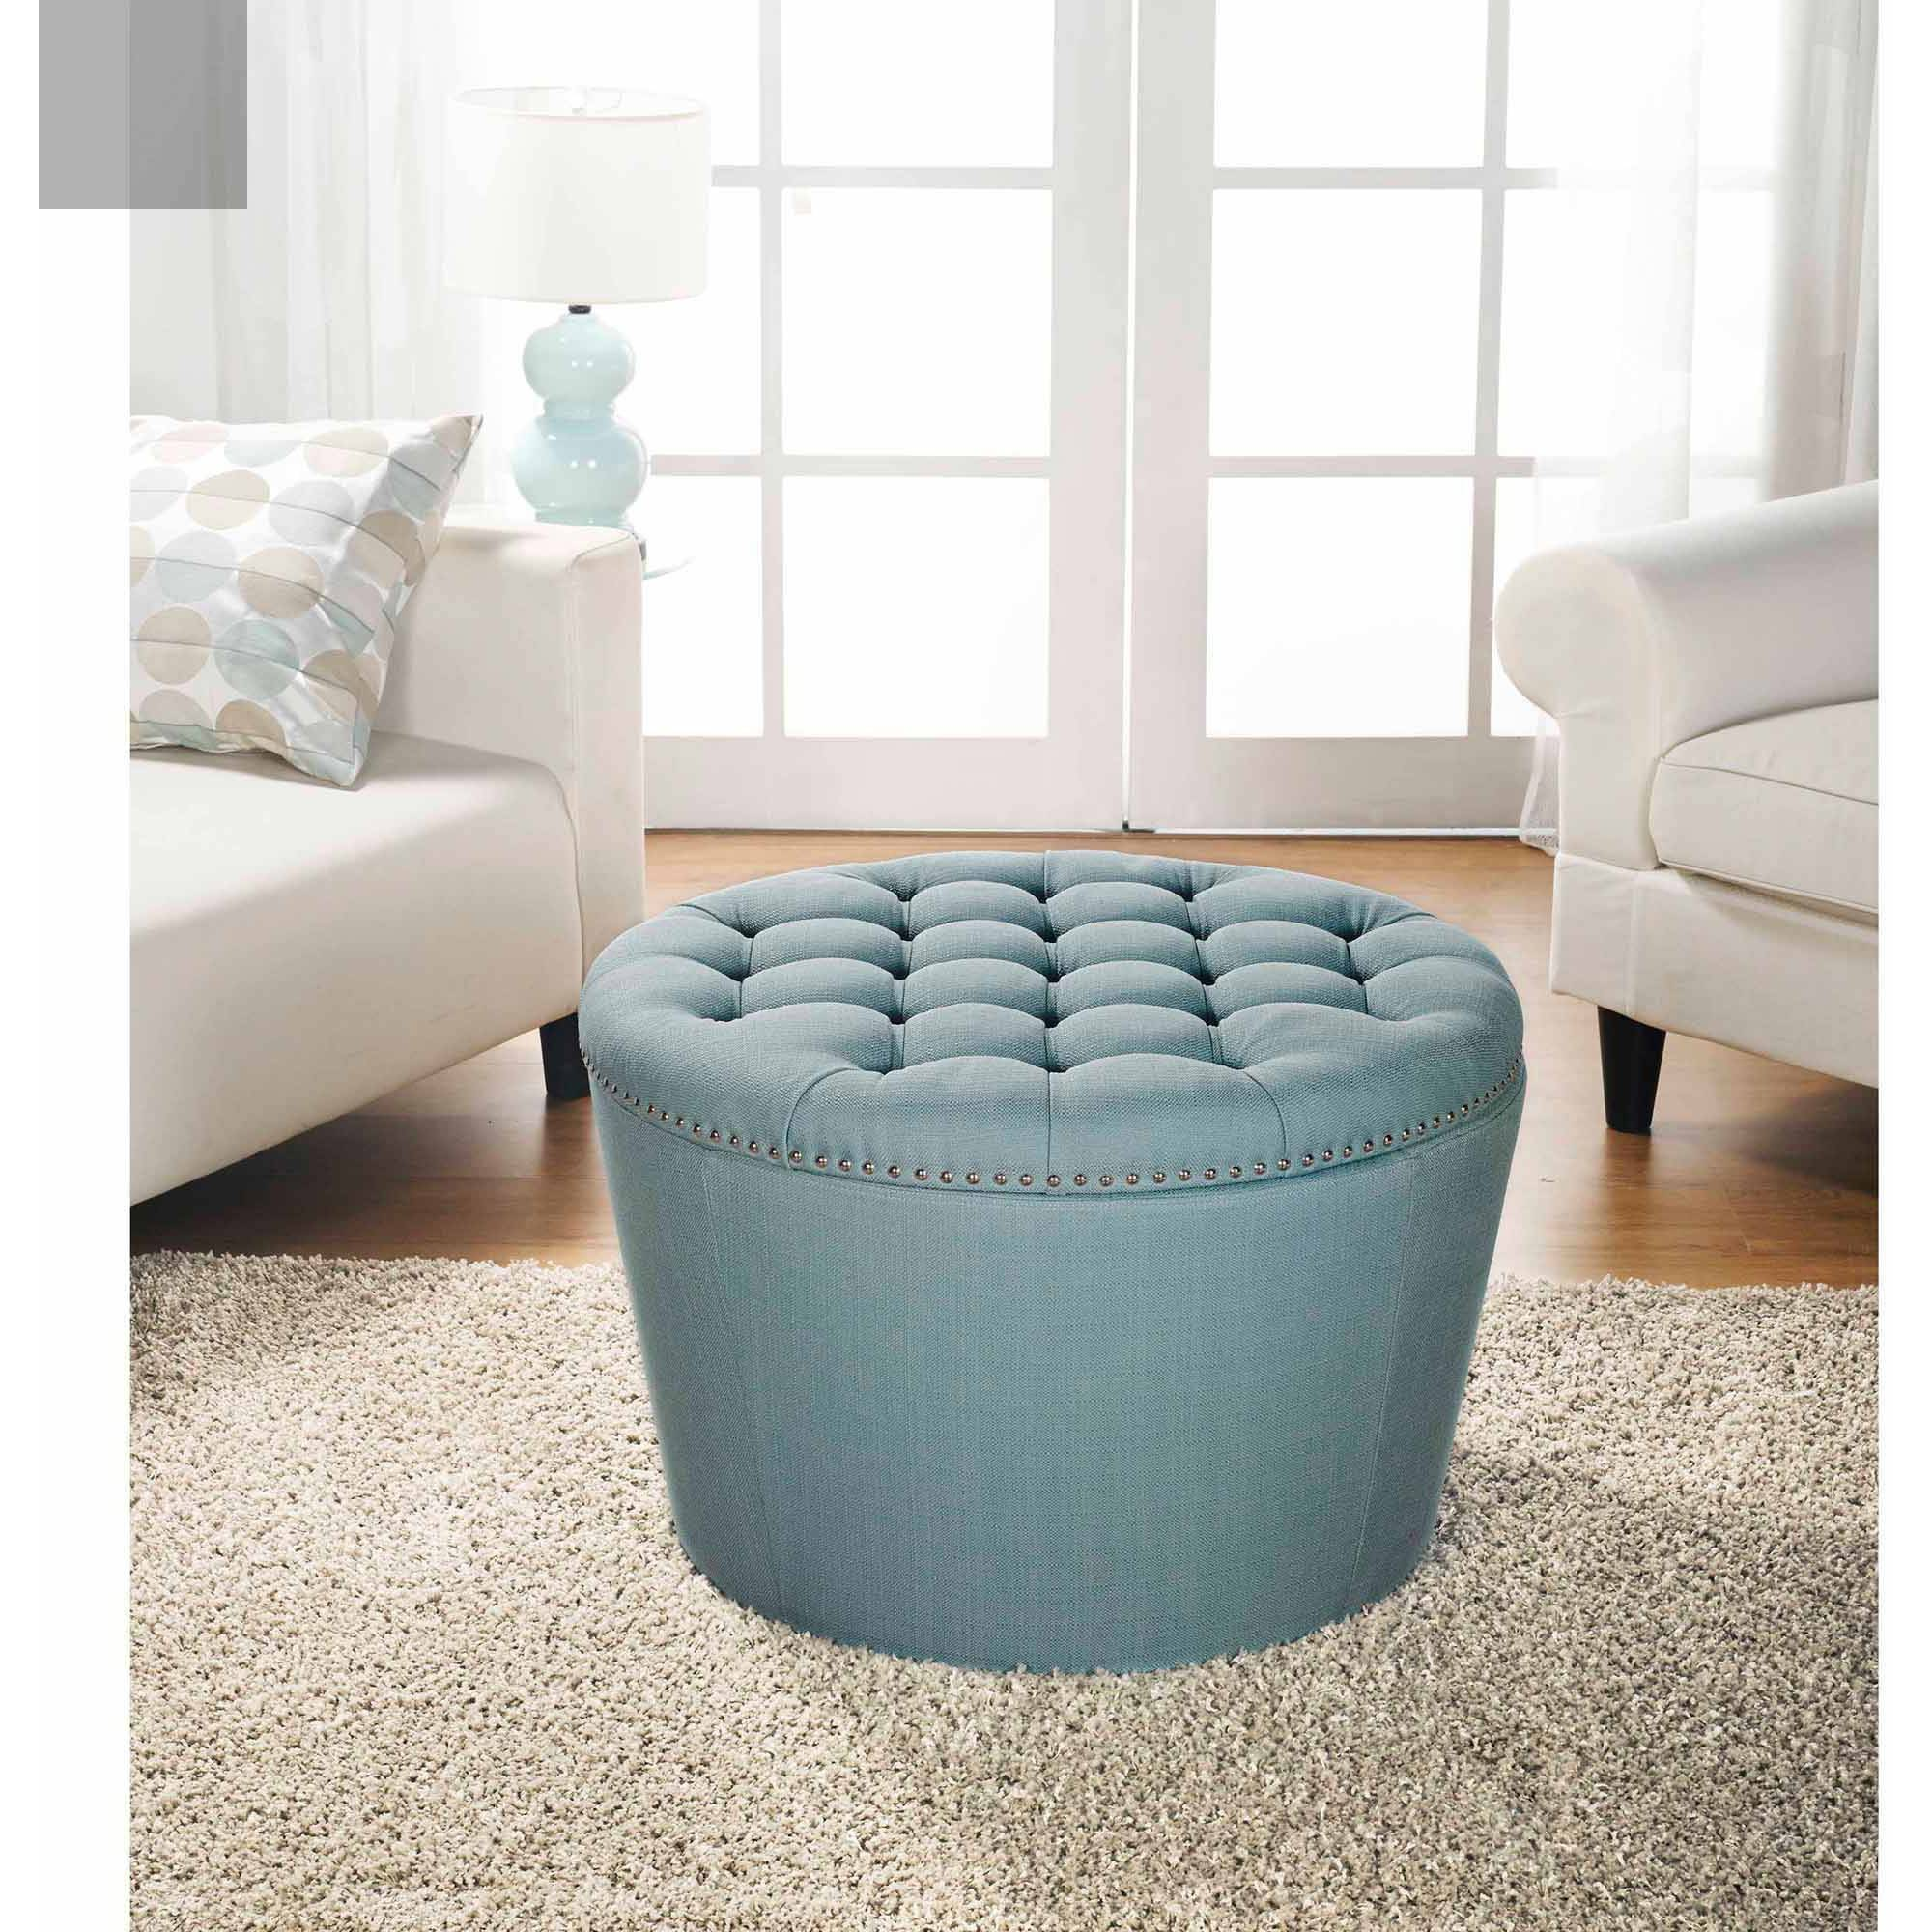 Better Homes And Gardens Round Tufted Storage Ottoman With Nailheads Teal Walmart Com Walmart Com